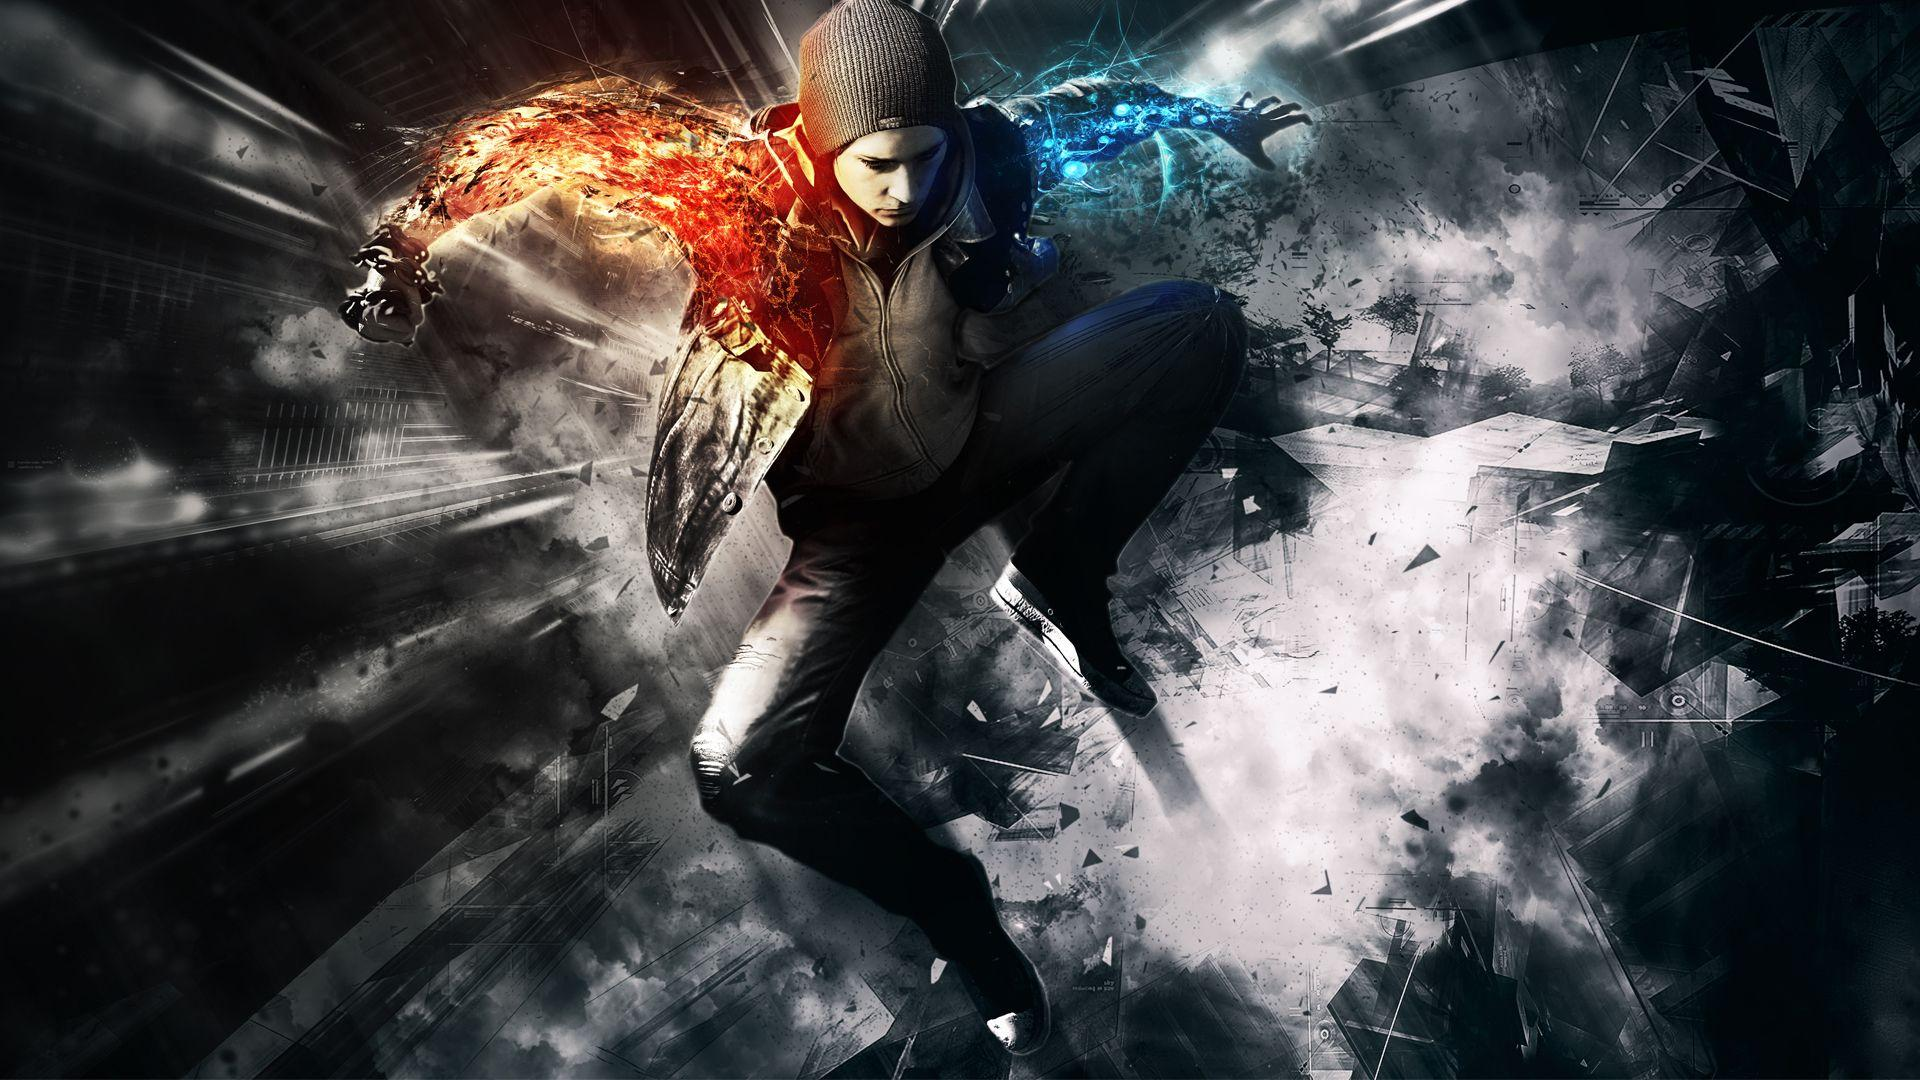 Infamous Second Son Wallpapers Smok HD Wallpaper, Backgrounds Image